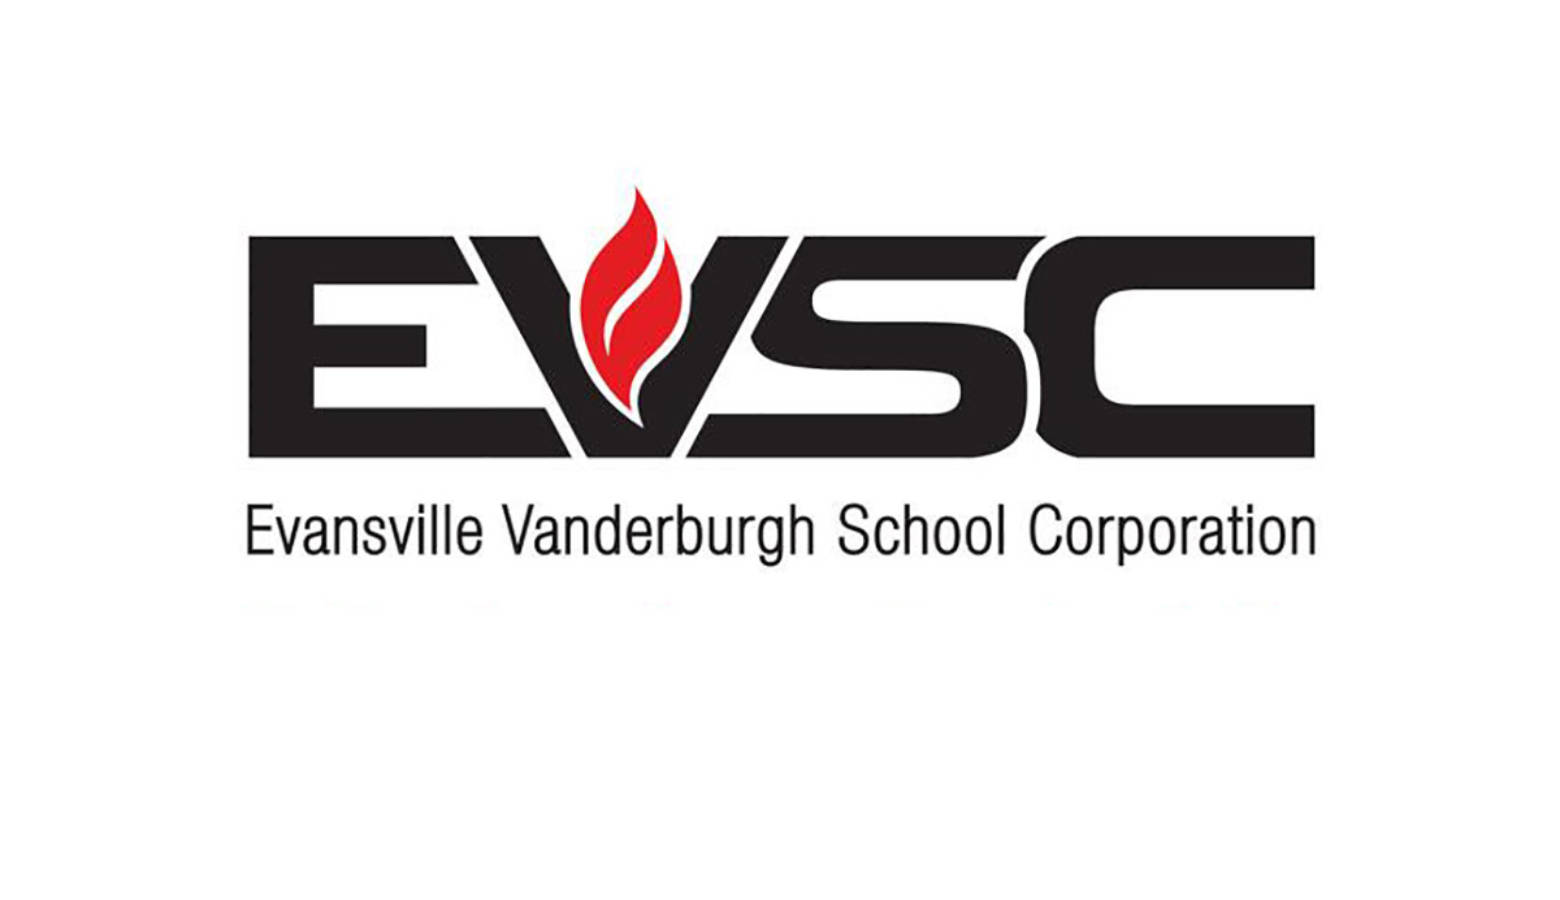 (Evansville Vanderburgh School Corporation)